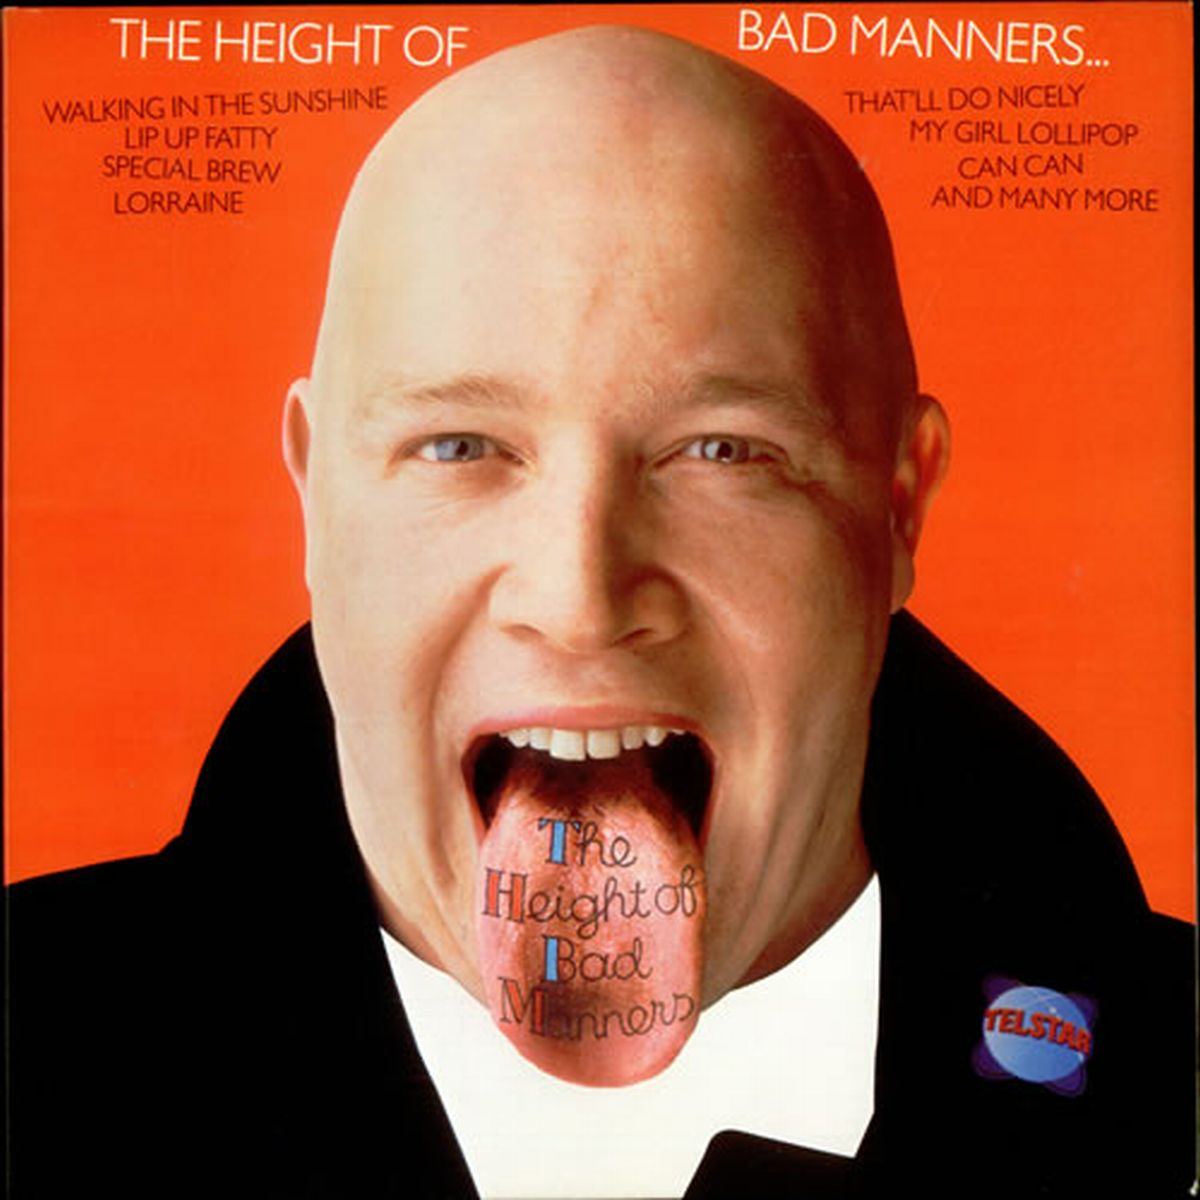 BUSTER Bloodvessel: The height of Bad Manners!